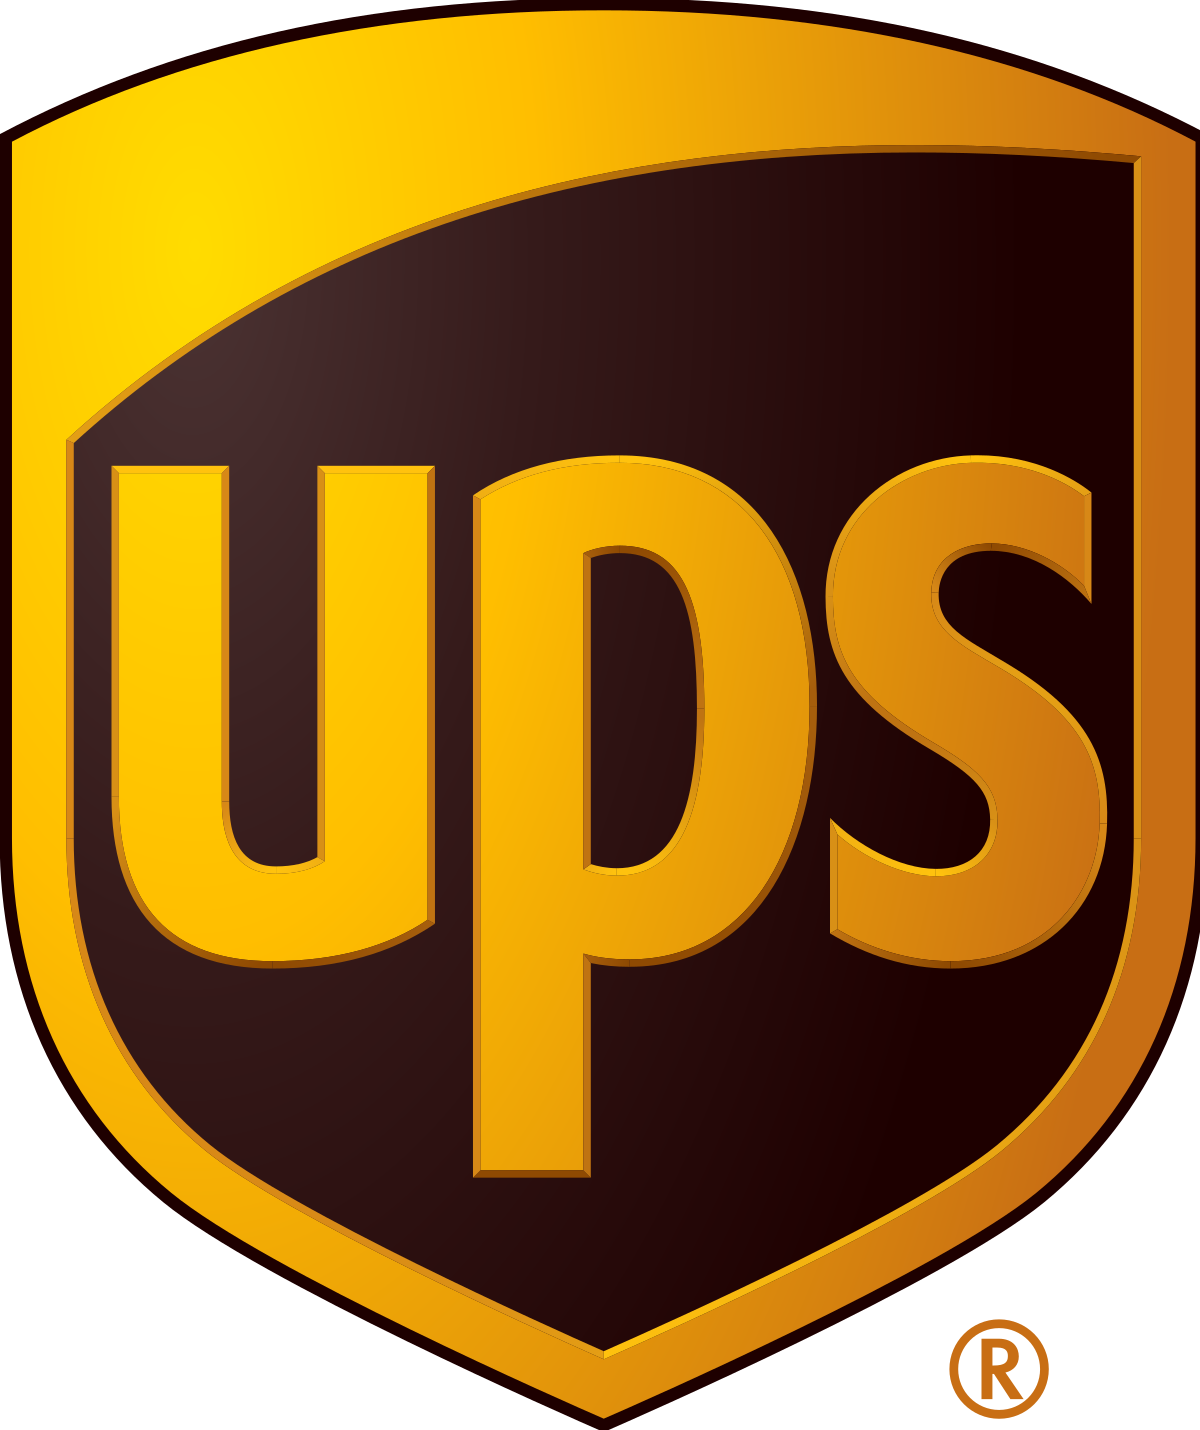 Post courier clipart newspaper online banner royalty free United Parcel Service - Wikipedia banner royalty free